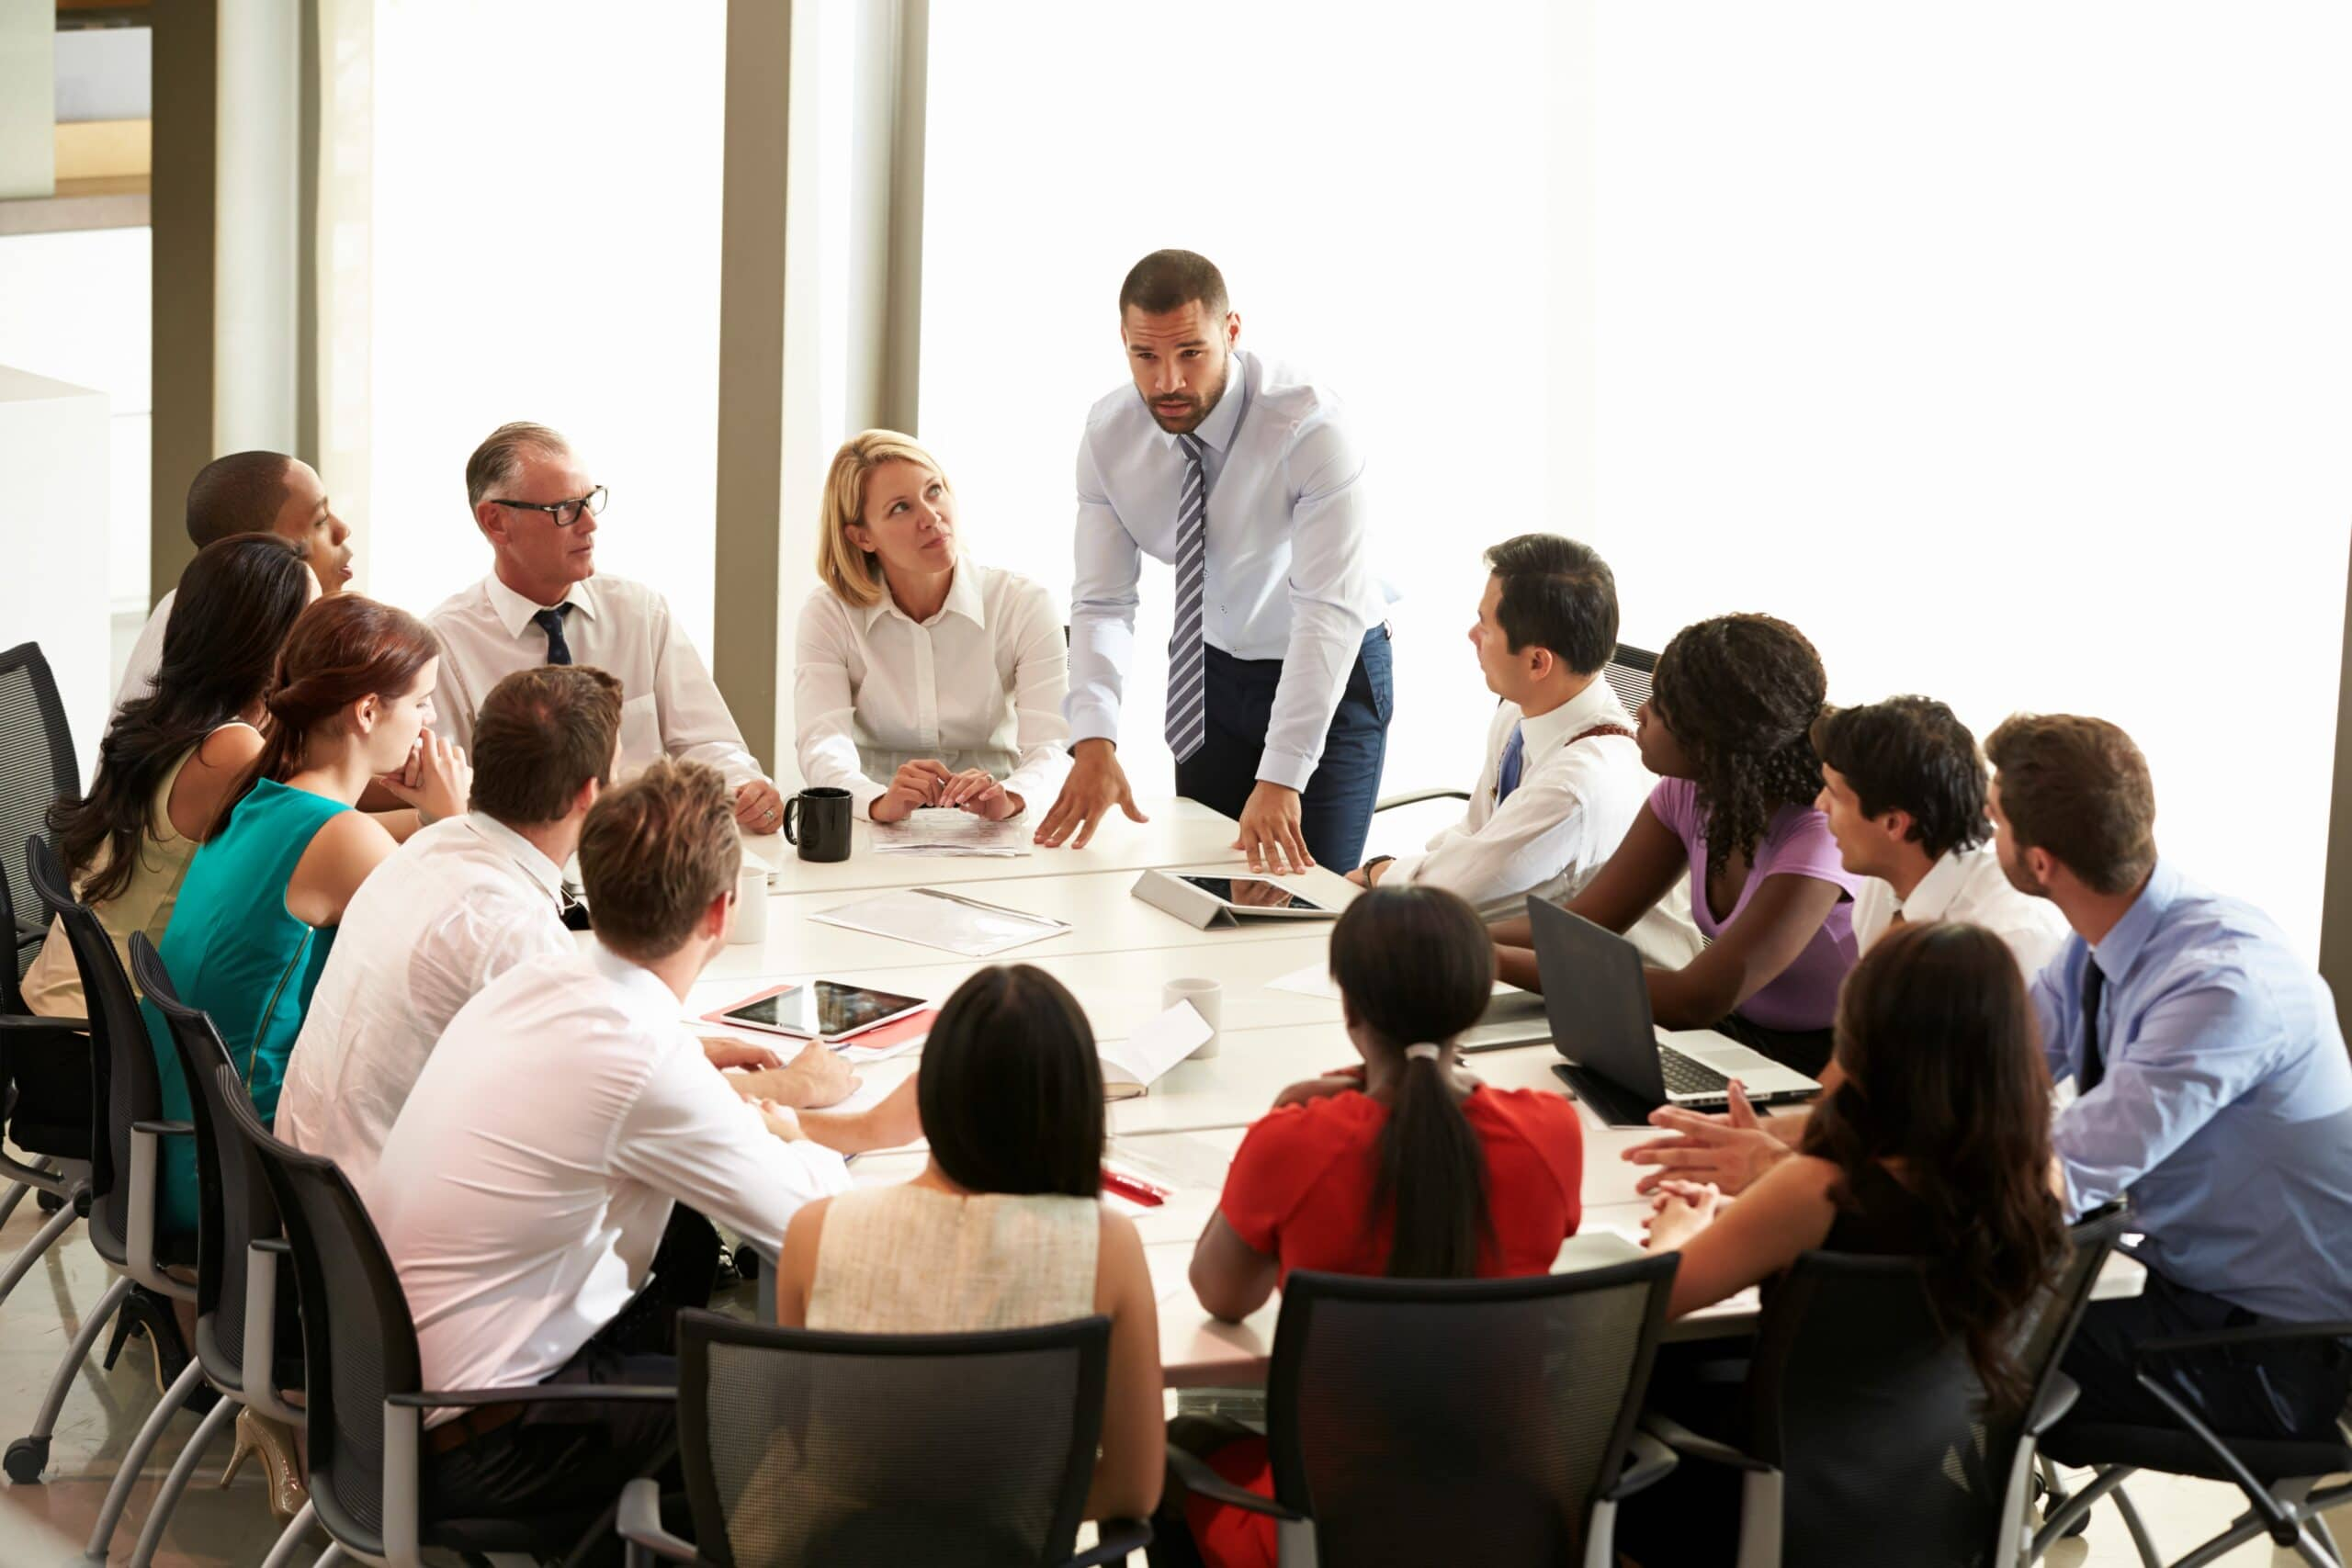 Seven Ways to Make Your Meetings Awesome and Effective